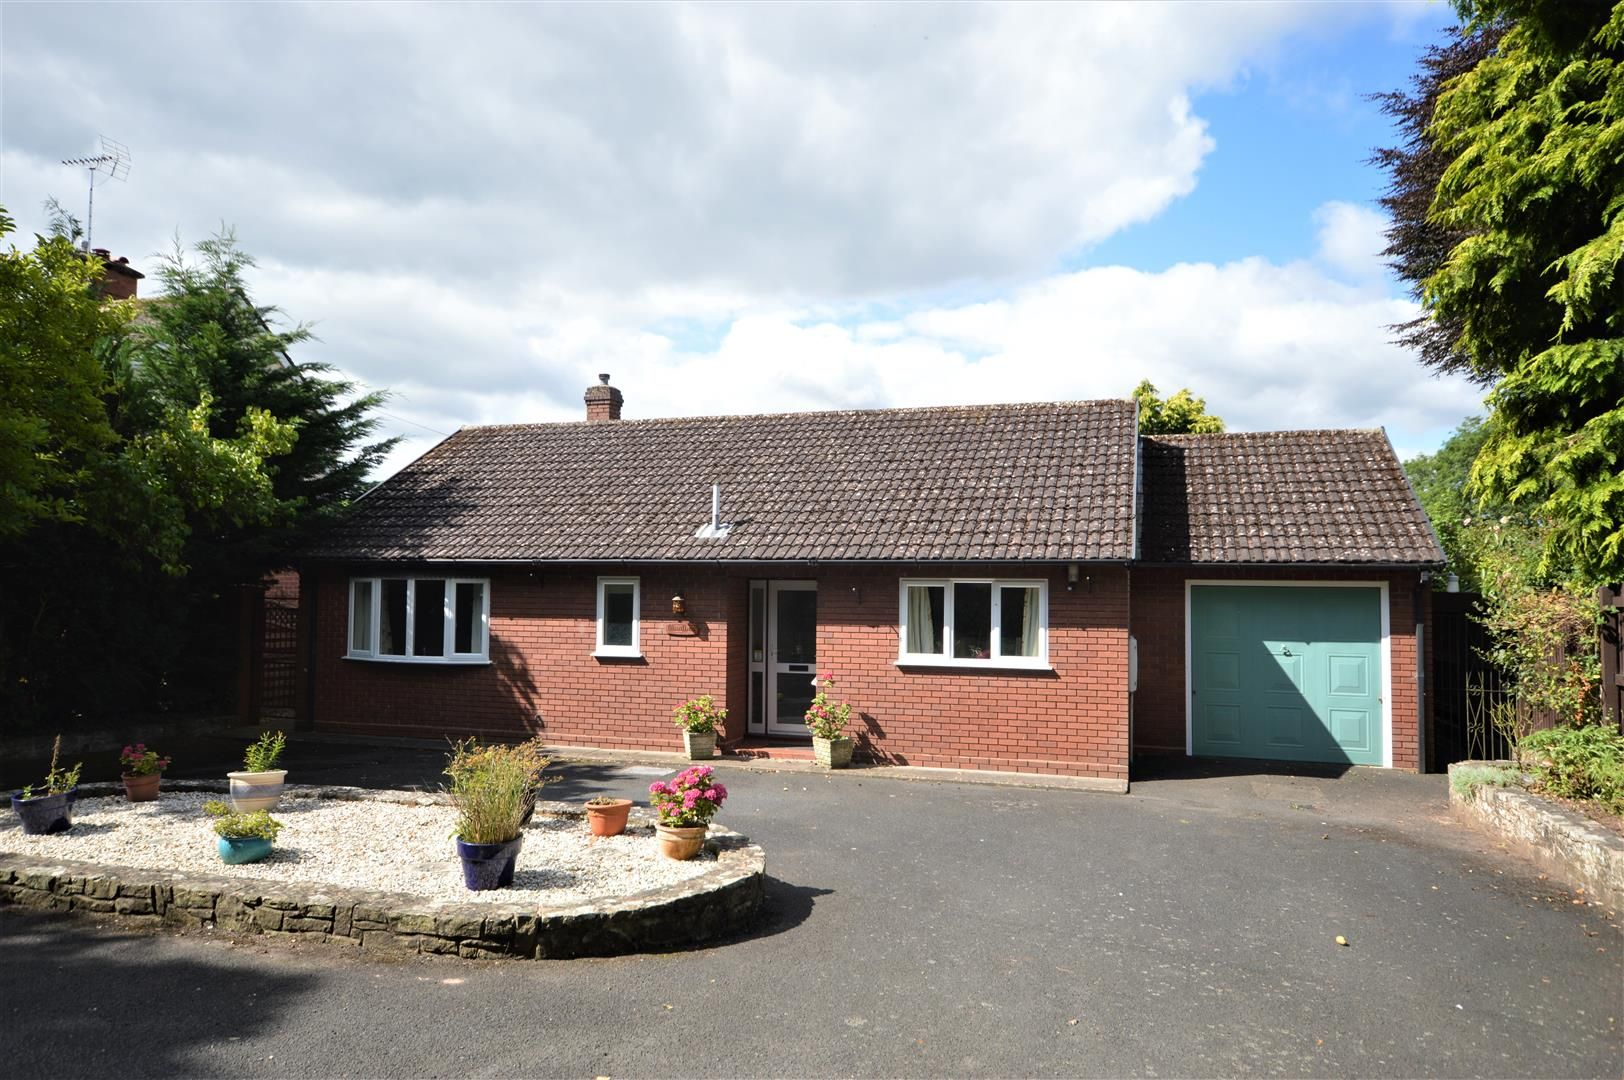 2 bed detached-bungalow for sale in Leominster, HR6